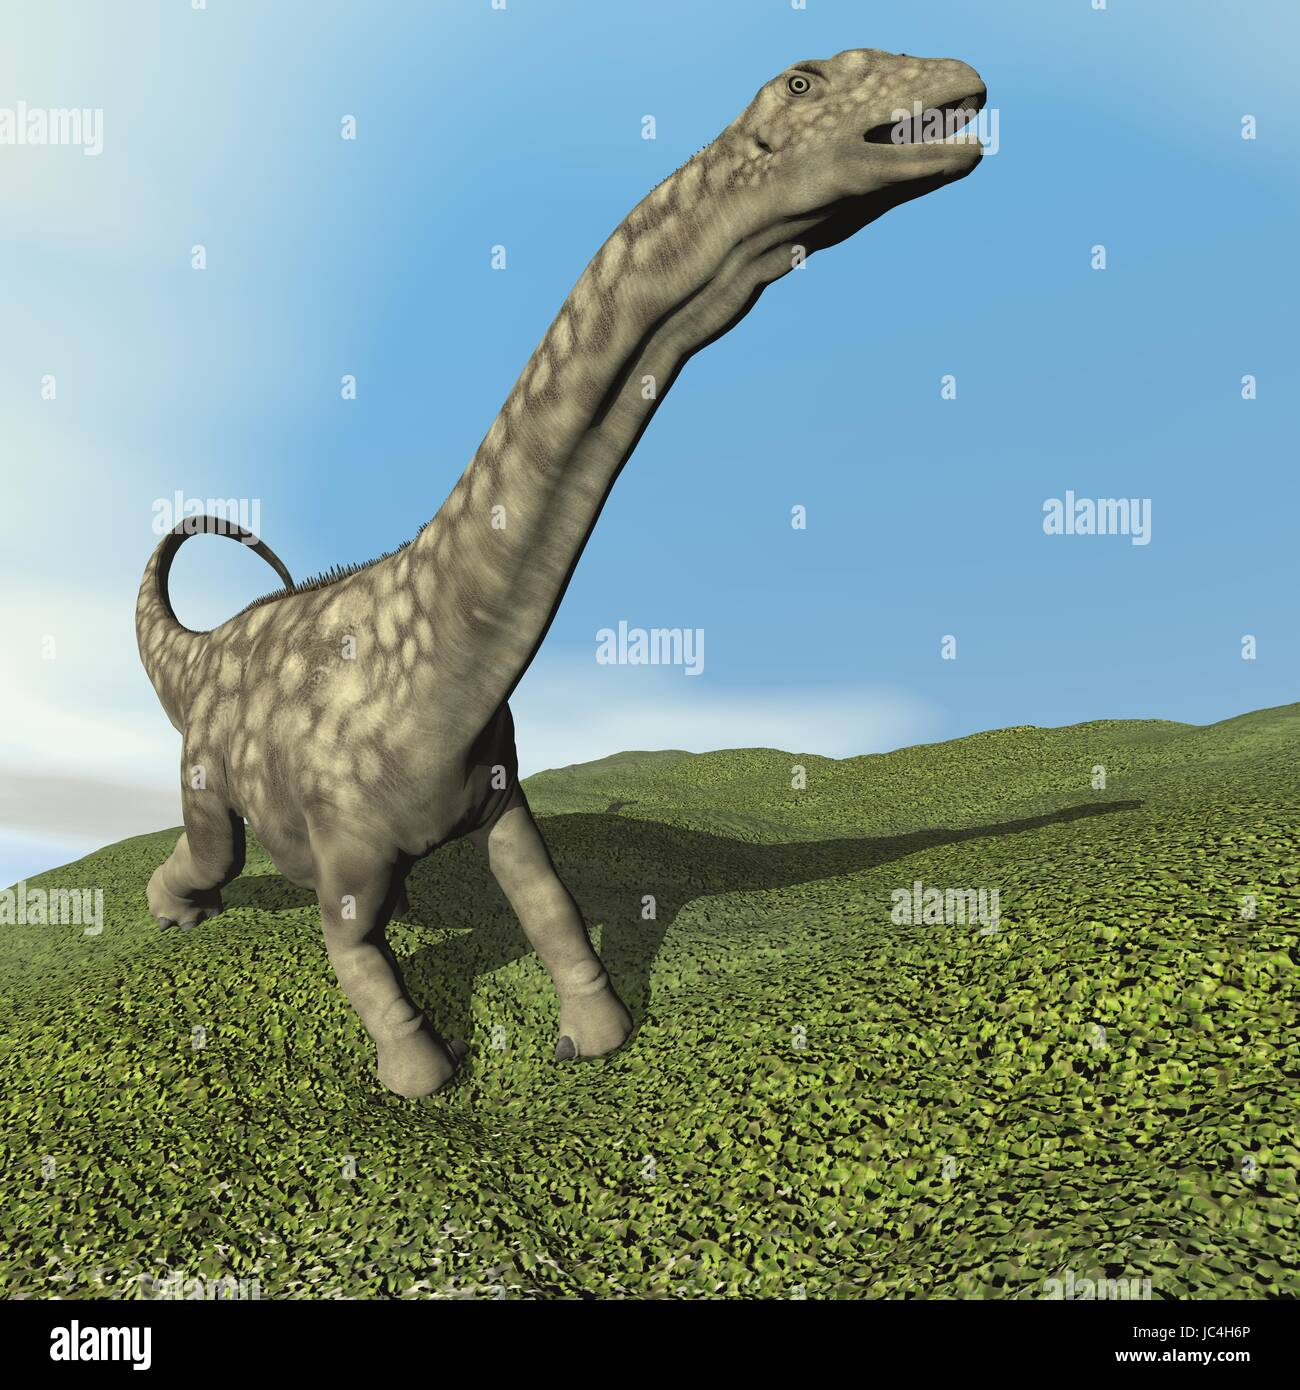 Argentinosaurus dinosaur walking on the grass by day - 3D render Stock Photo